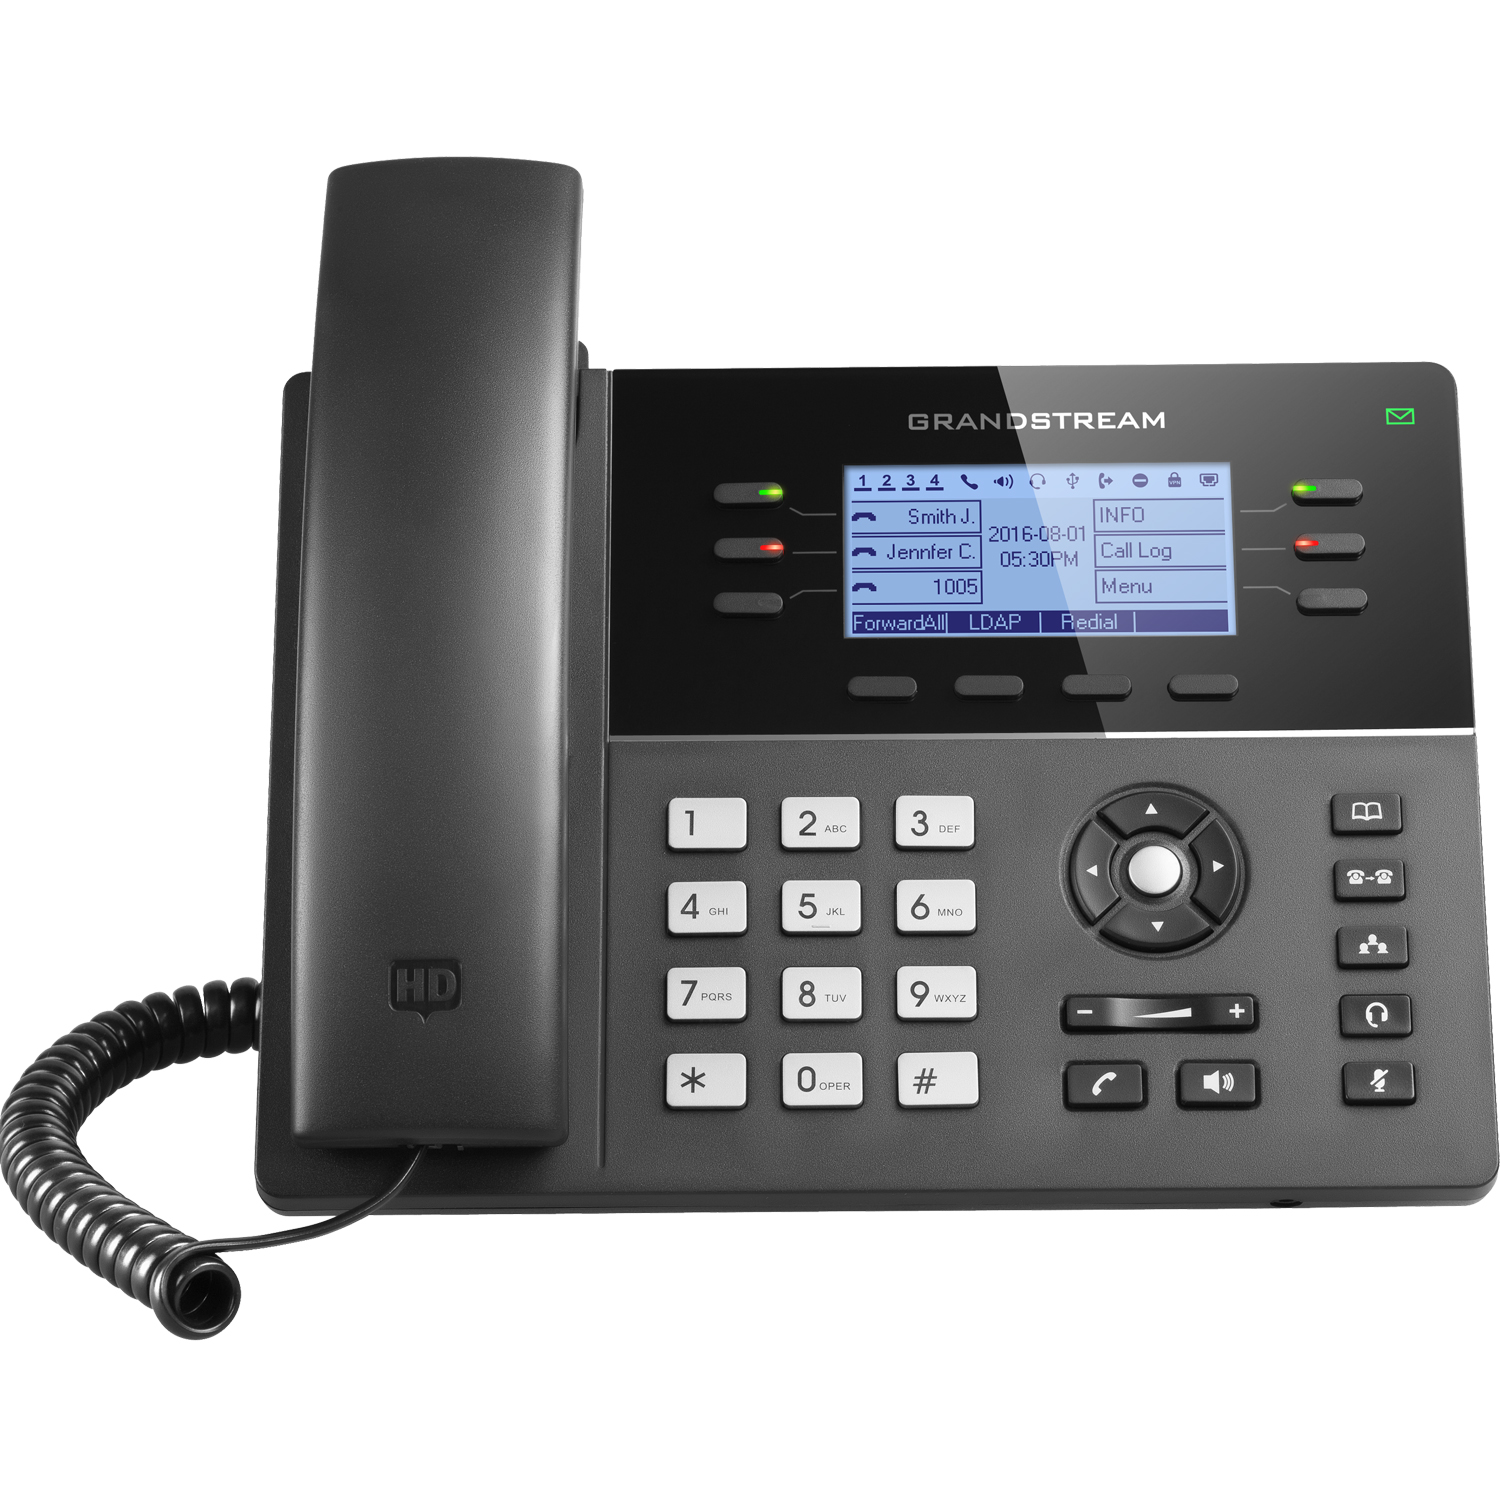 Grandstream Gxp1760 Mid Range IP Phone